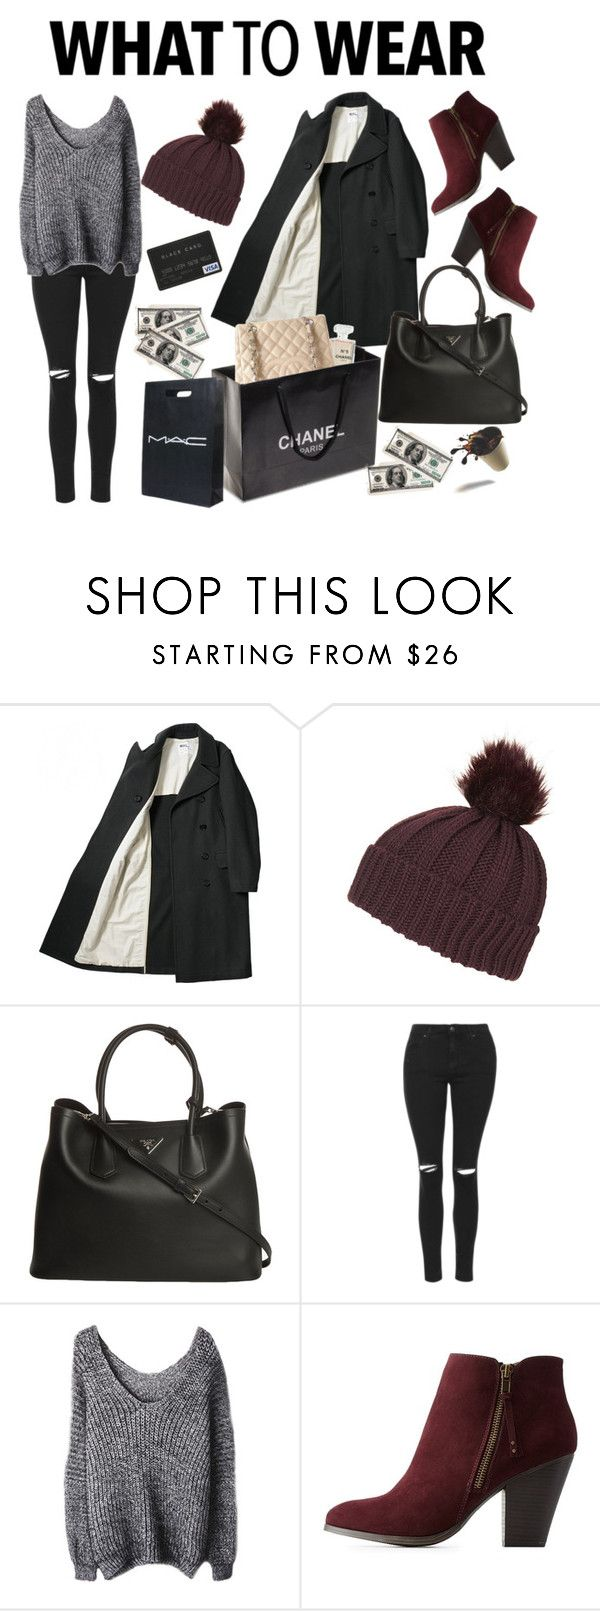 """Black Friday: Comfy & Stylish"" by sherinaaaa ❤ liked on Polyvore featuring Topshop, Prada, Chanel, Charlotte Russe, CO, Original, polyvoreeditorial, polyvorecontest, shoptilyoudrop and polyvoreoriginal"